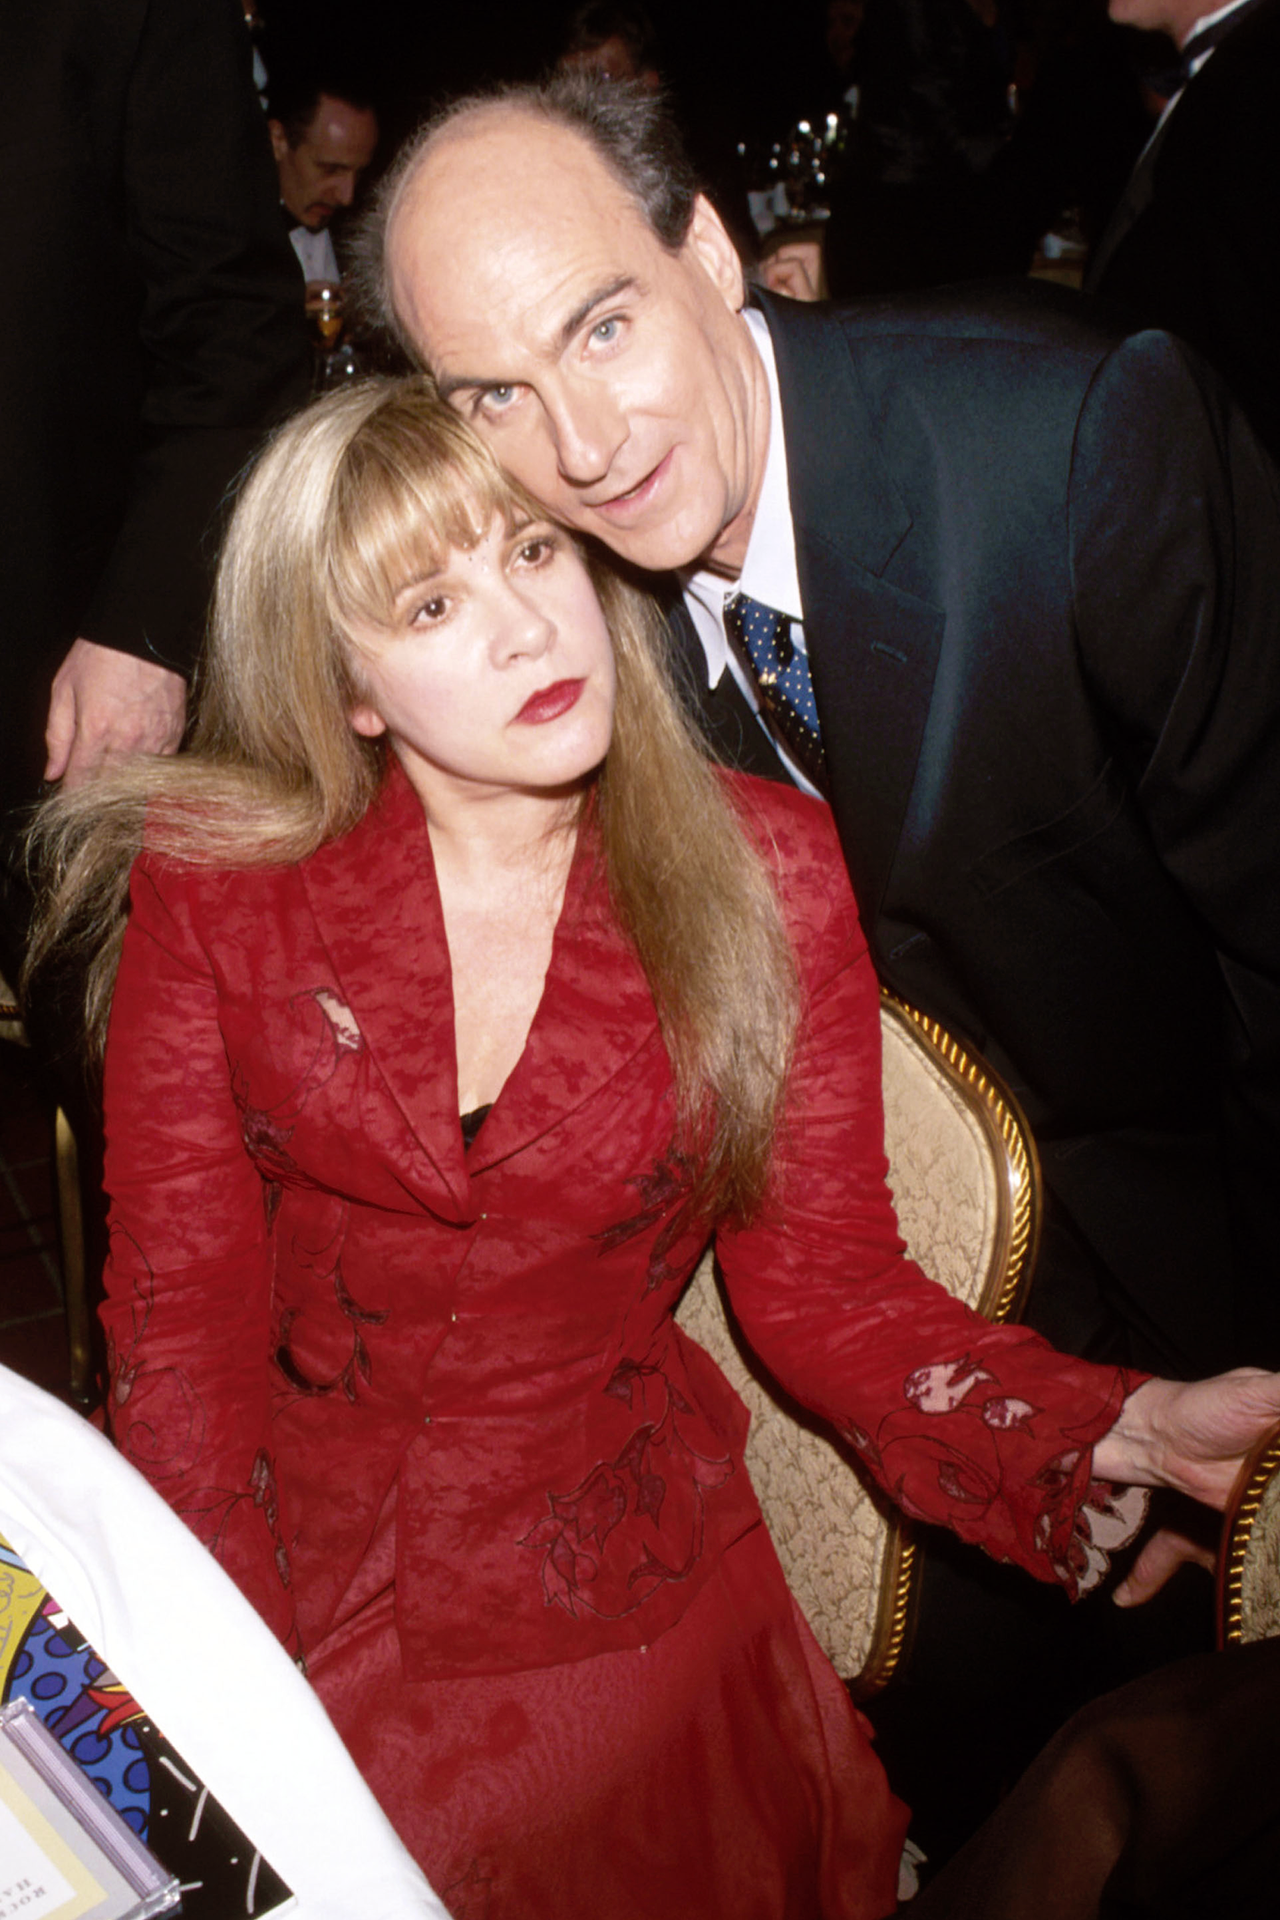 Stevie ~ ☆♥❤♥☆ ~ in a pensive mood and James Taylor